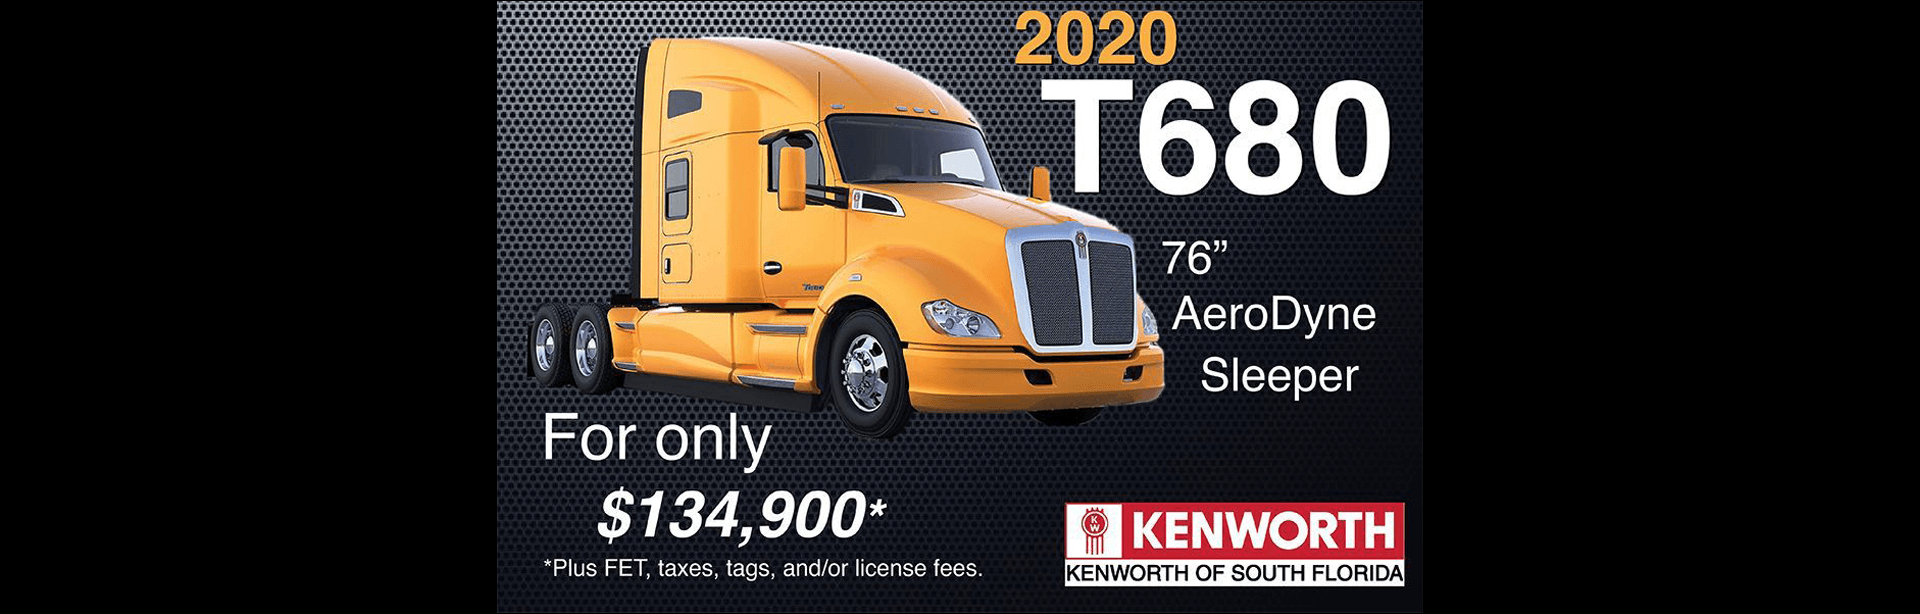 New 2020 Kenworth T680 For Sale in South Florida